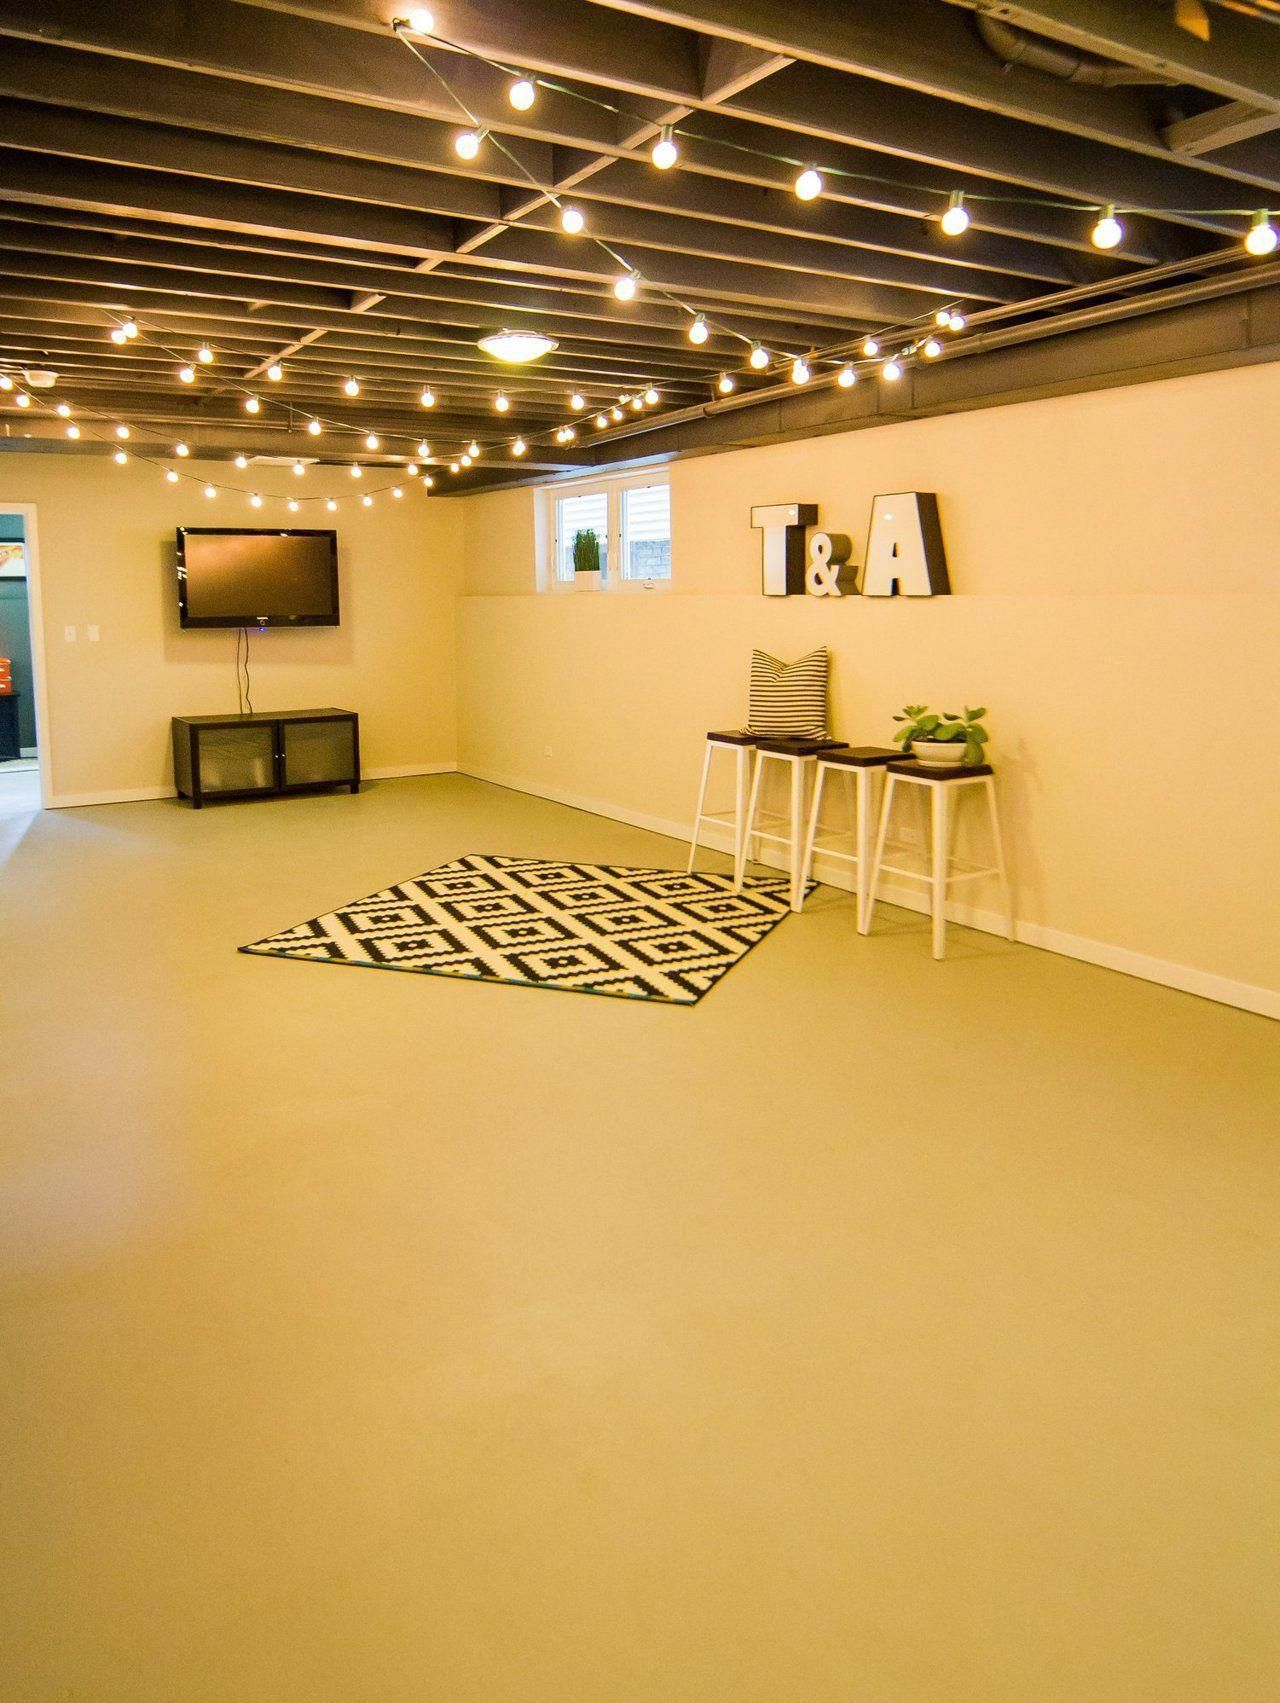 Amy Todds Mod Chicago Home Simple Basement Upgrade To Tide Us Over Christmaslightsideas